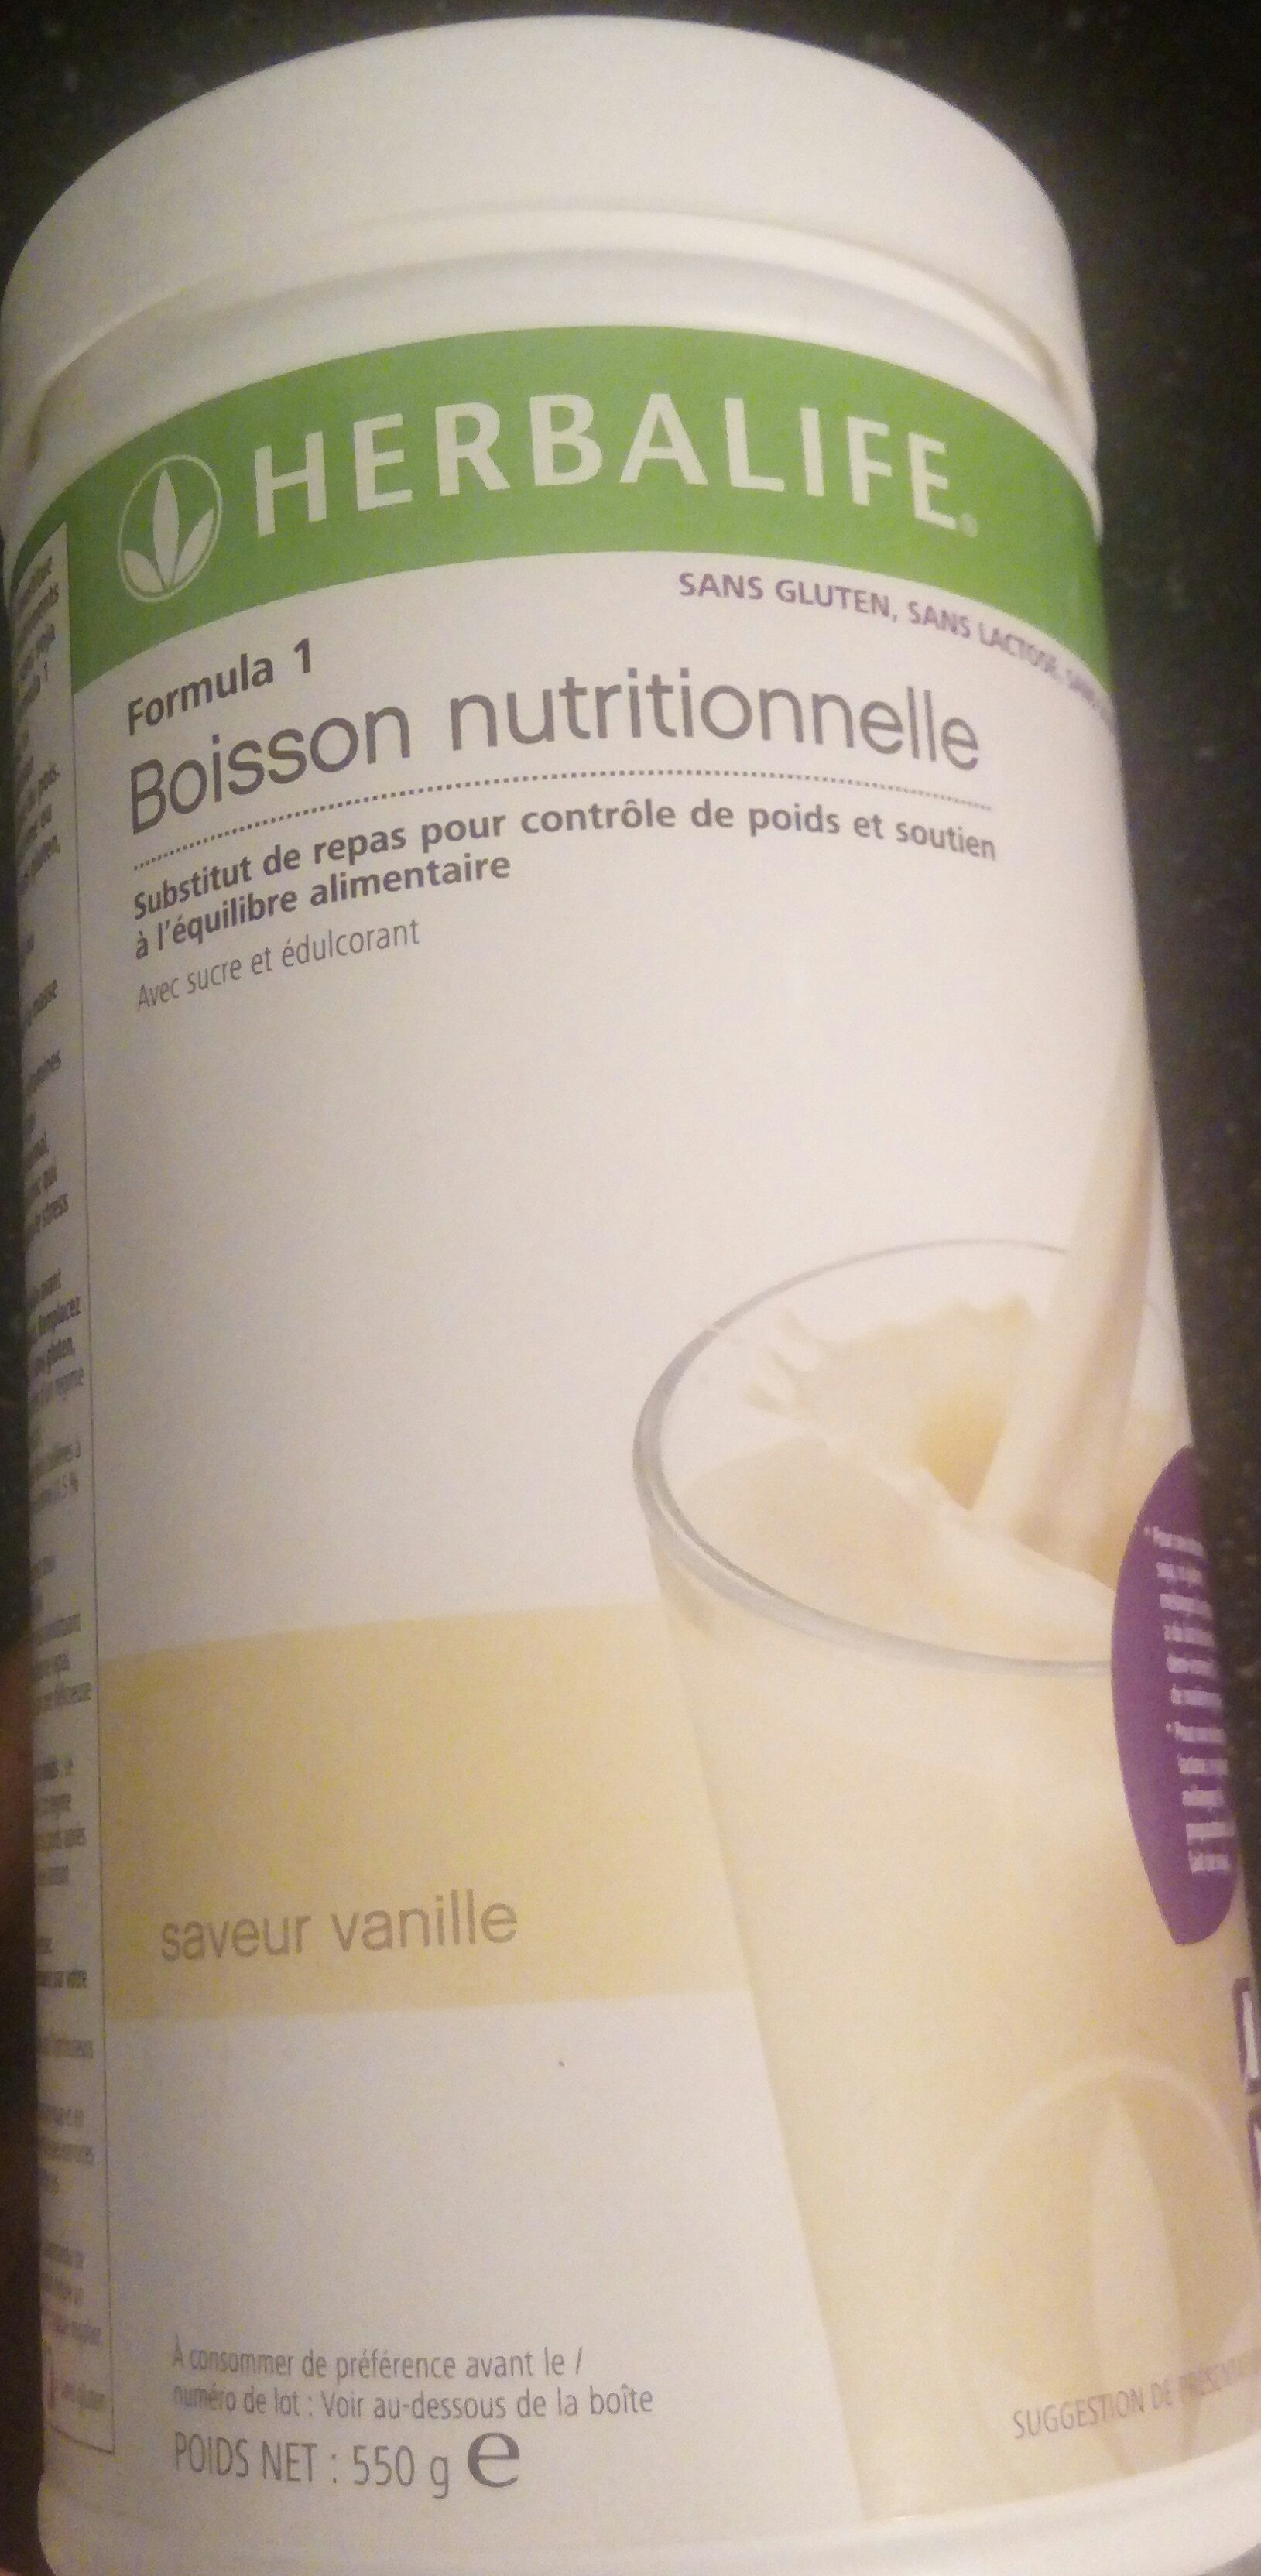 Herbalife free vanille formula 1 - Product - fr